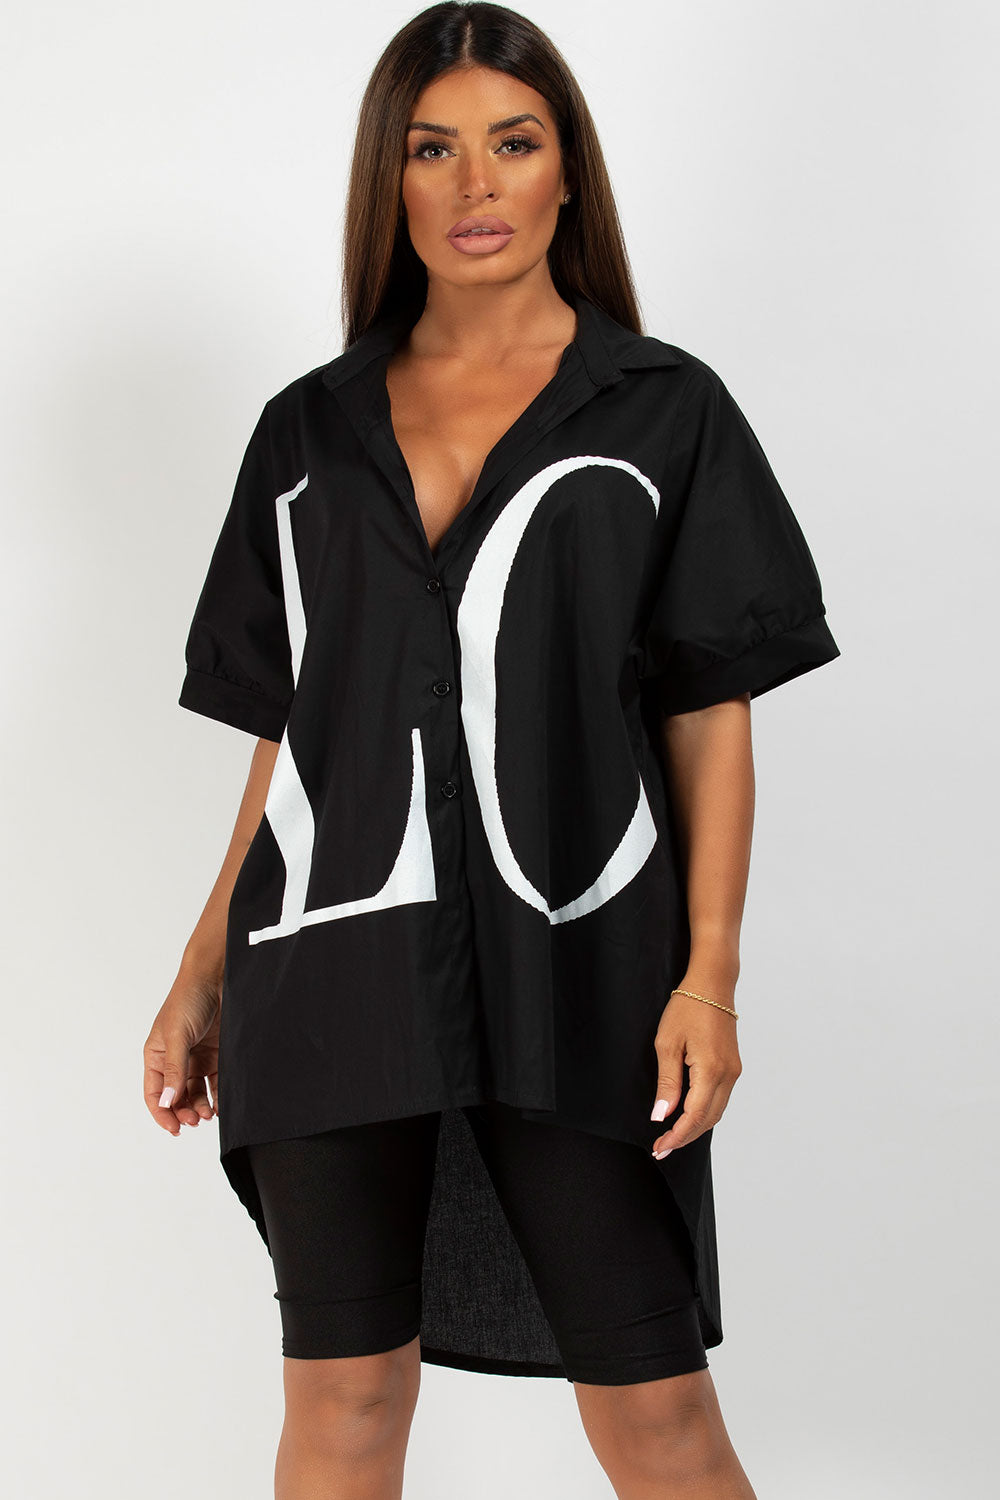 Love Oversized Shirt Black Valentino Inspired